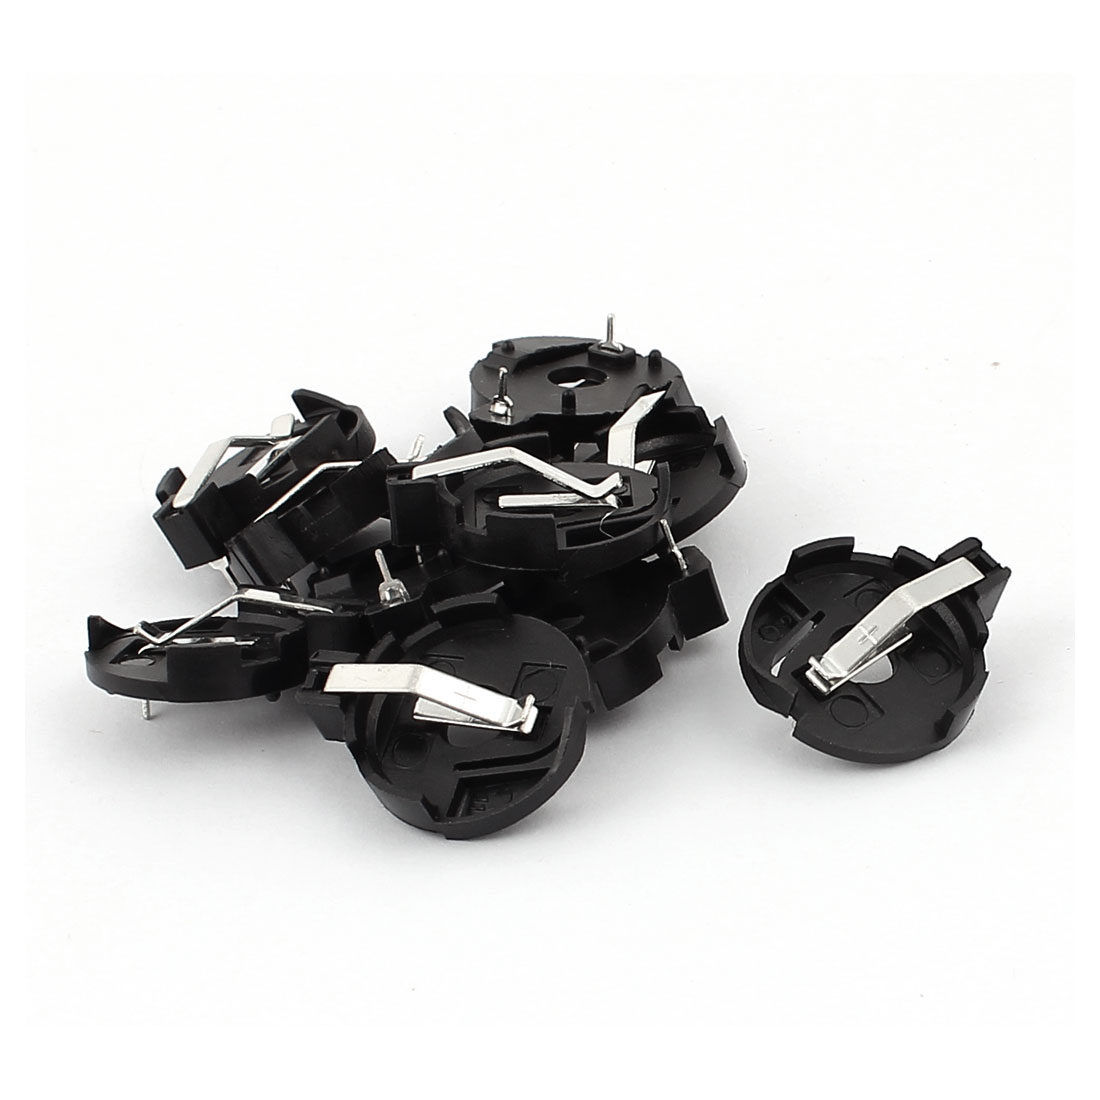 10Pcs Black Plastic Shell Coin Cell Button Battery Holder Socket for CR2016/CR2025/CR2032 Batteries